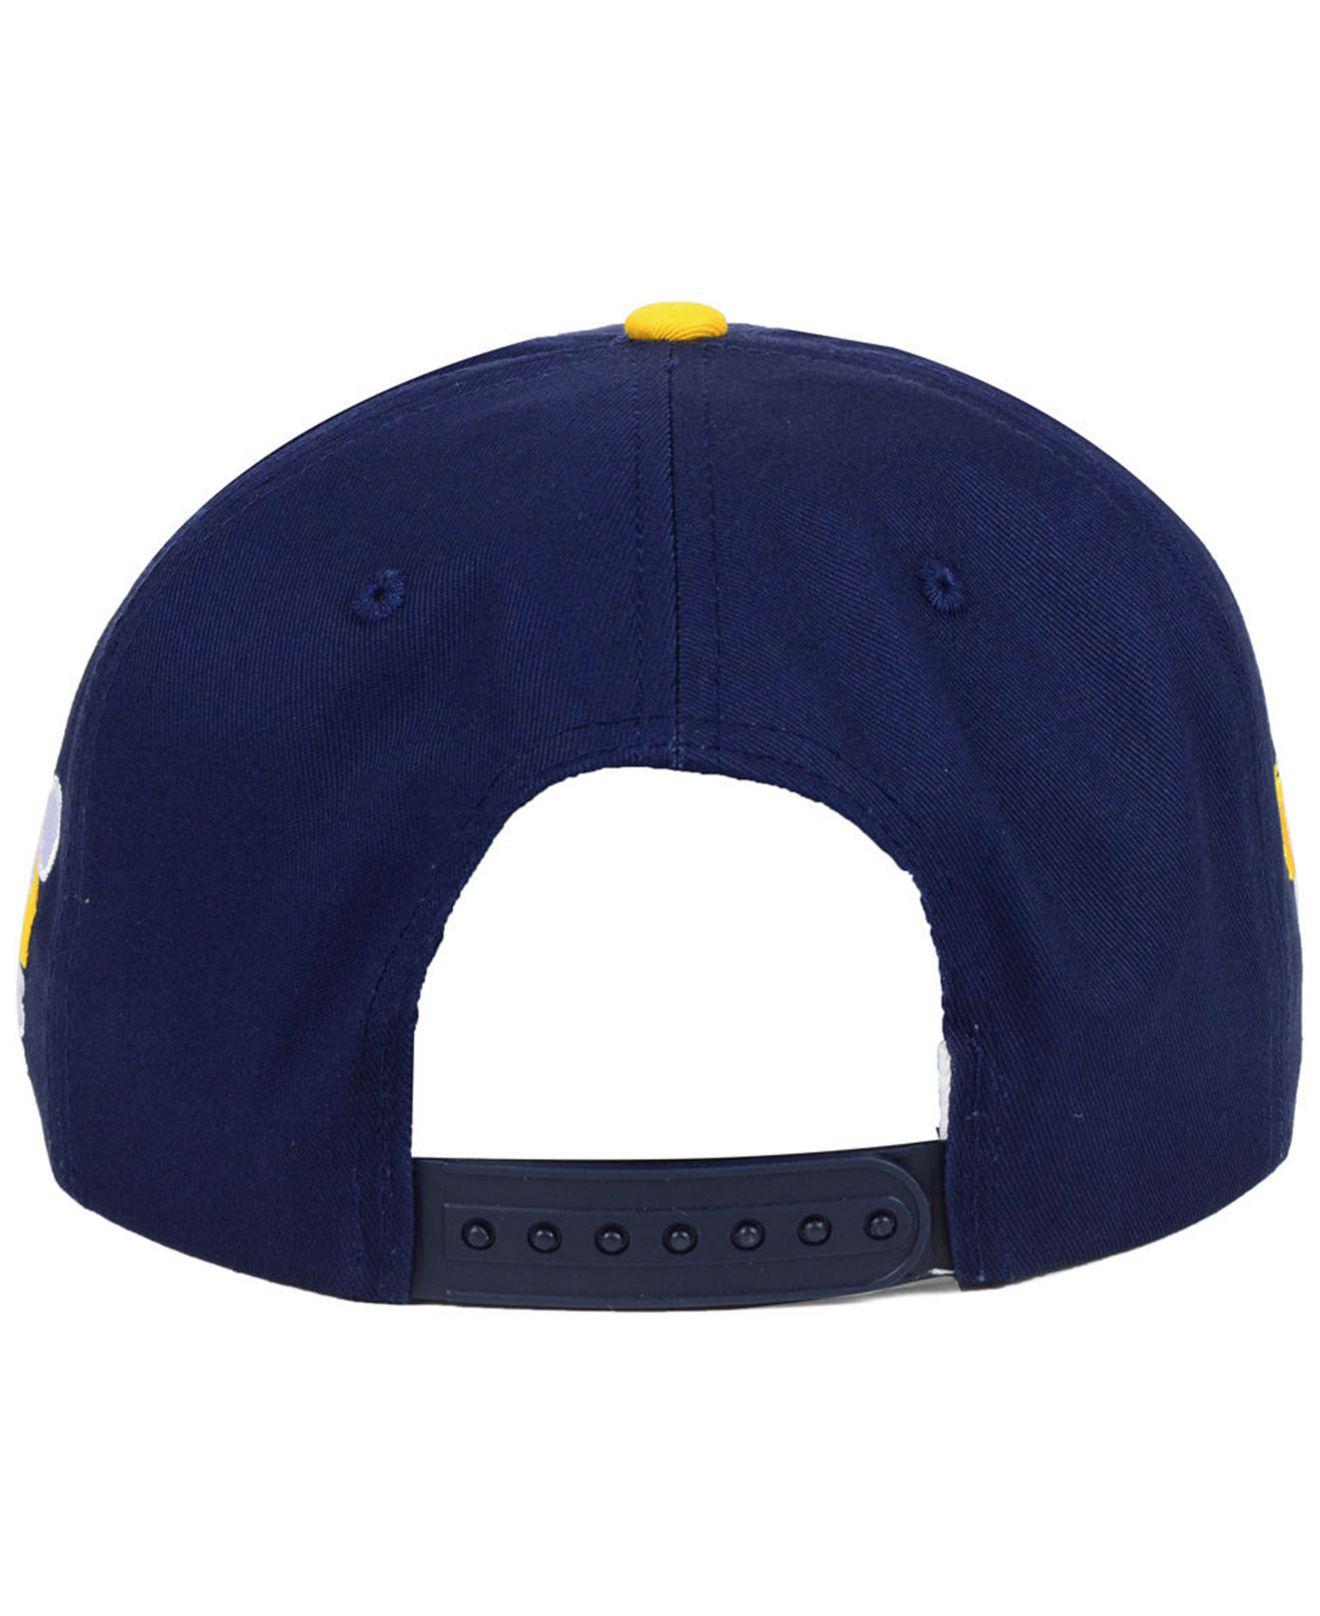 491899b5 Nike - Blue West Virginia Mountaineers Sport Specialties Snapback Cap for  Men - Lyst. View fullscreen